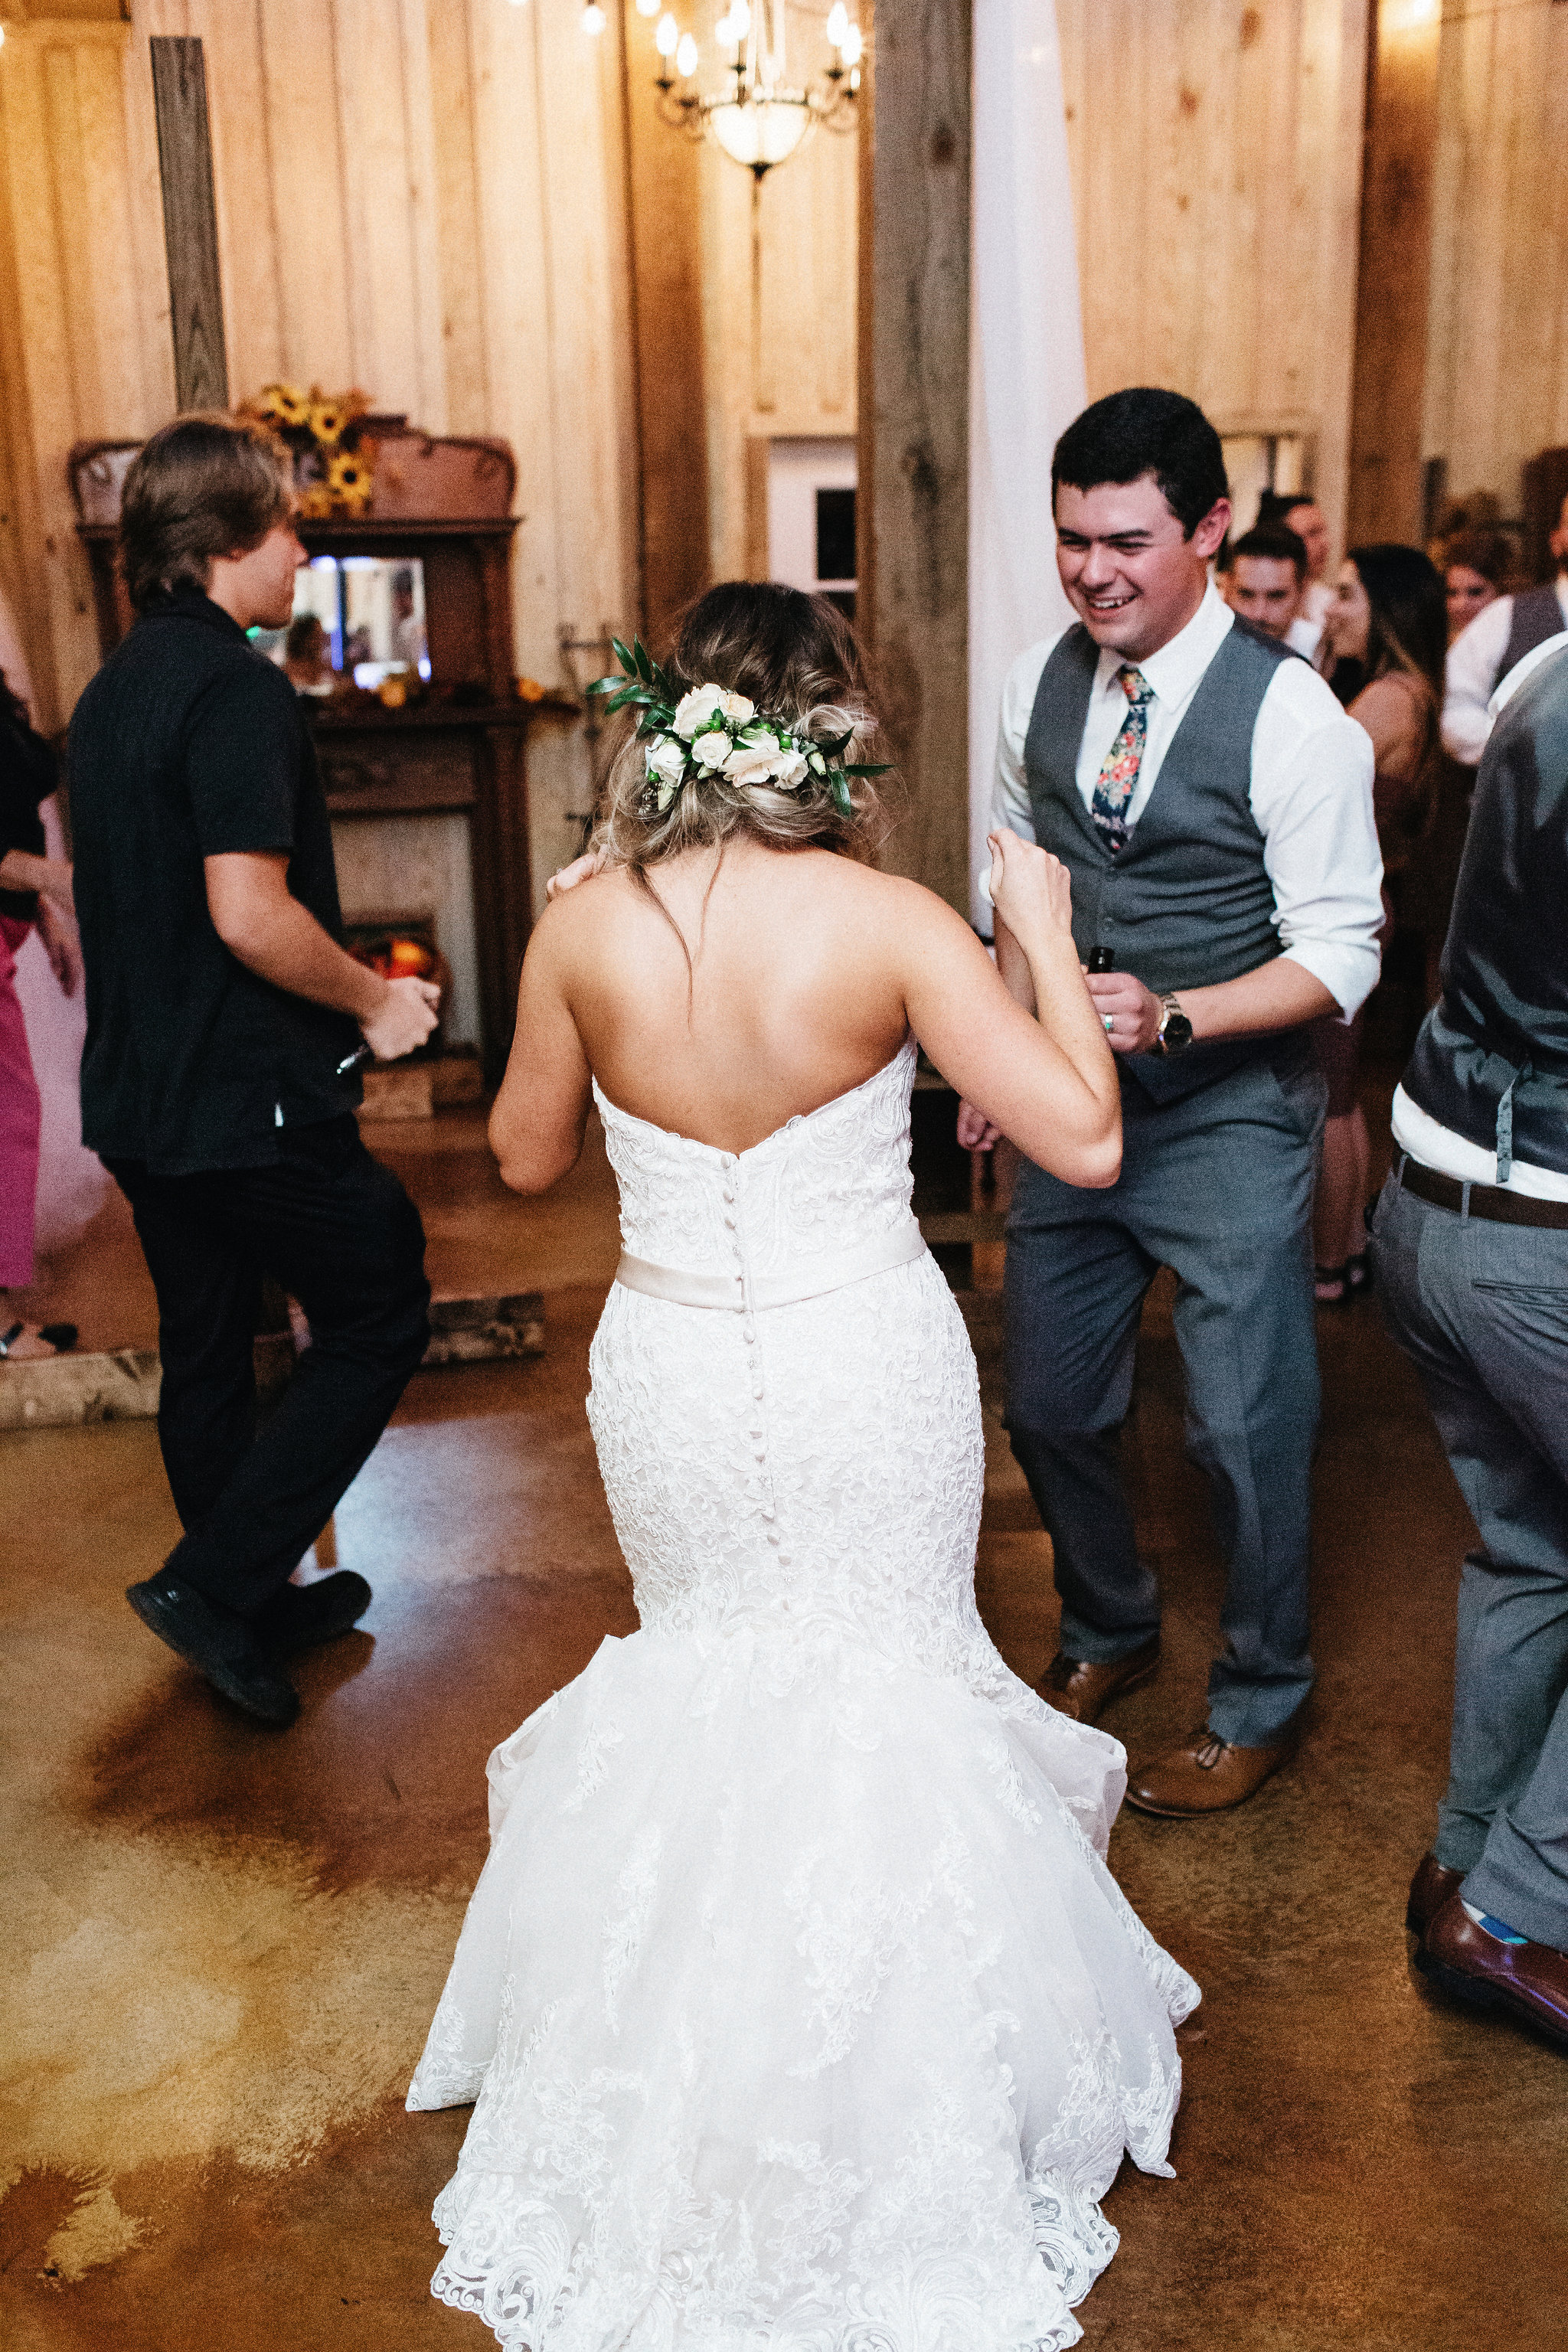 Ashley&NathanMarried2017-11-10at19.26.56PM16.jpg